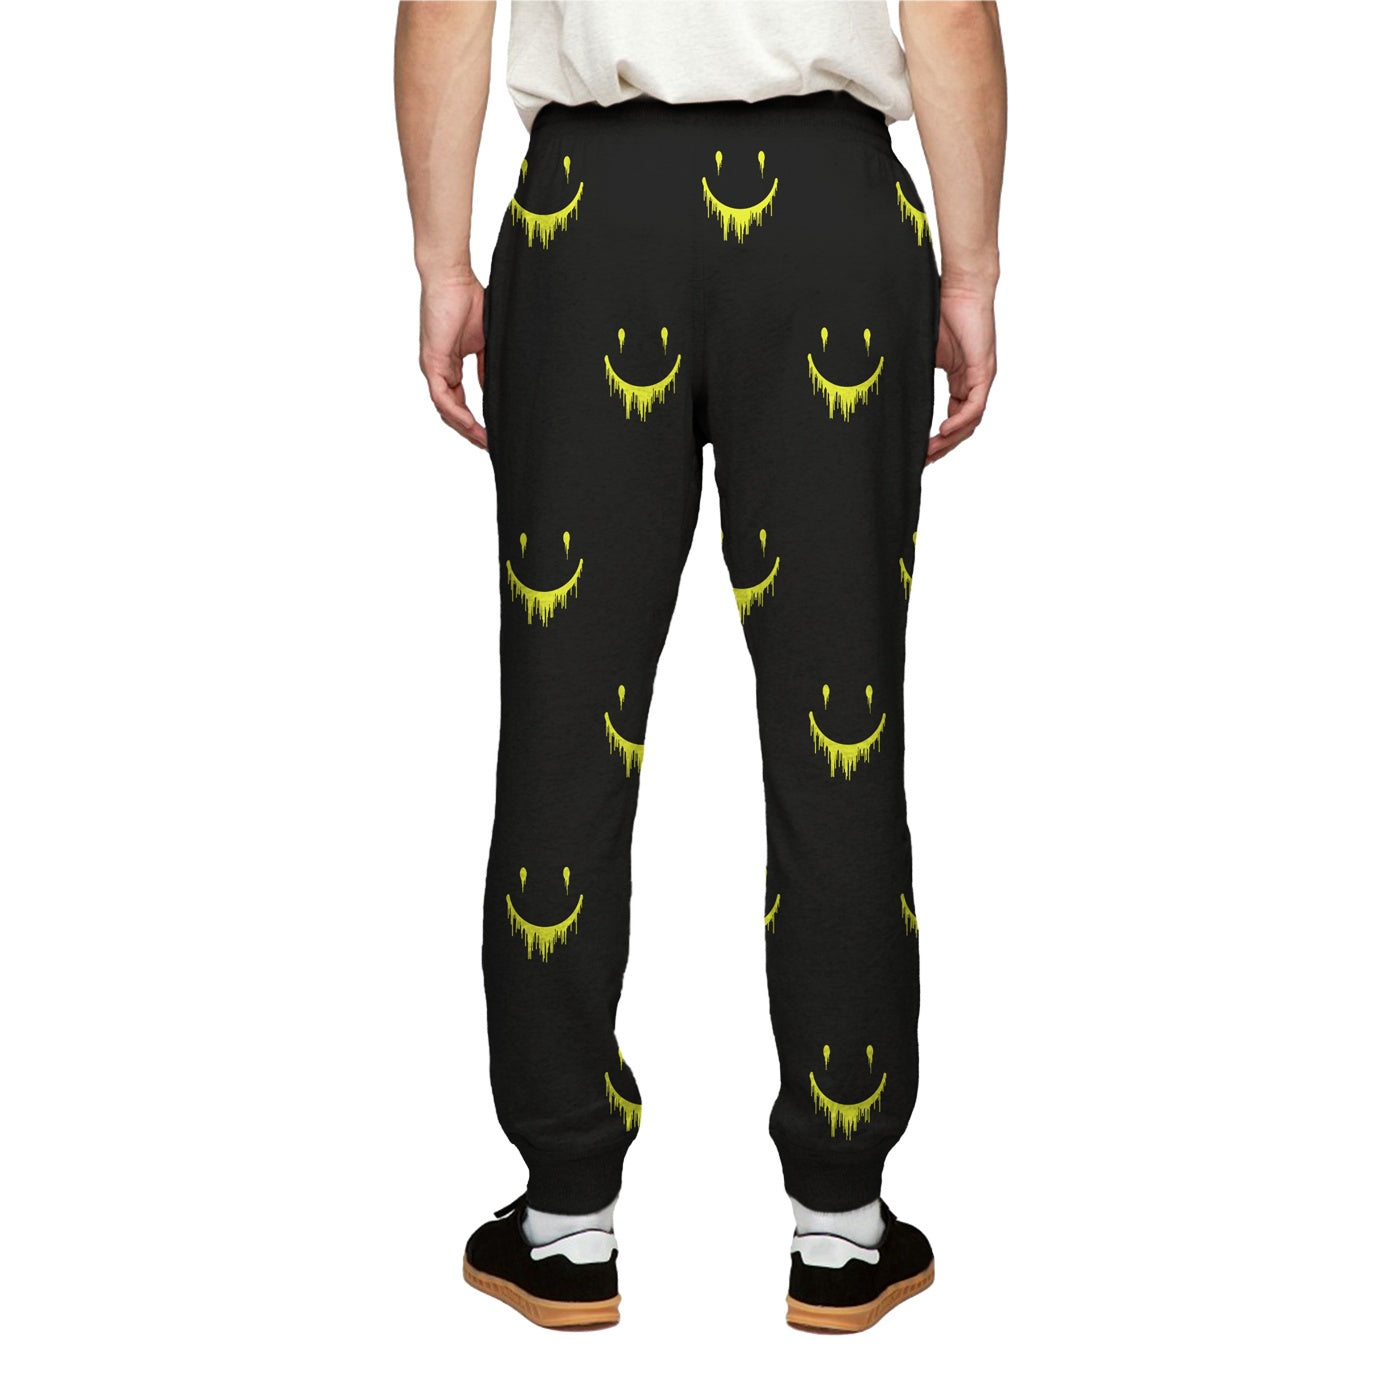 SMILE Sweatpants